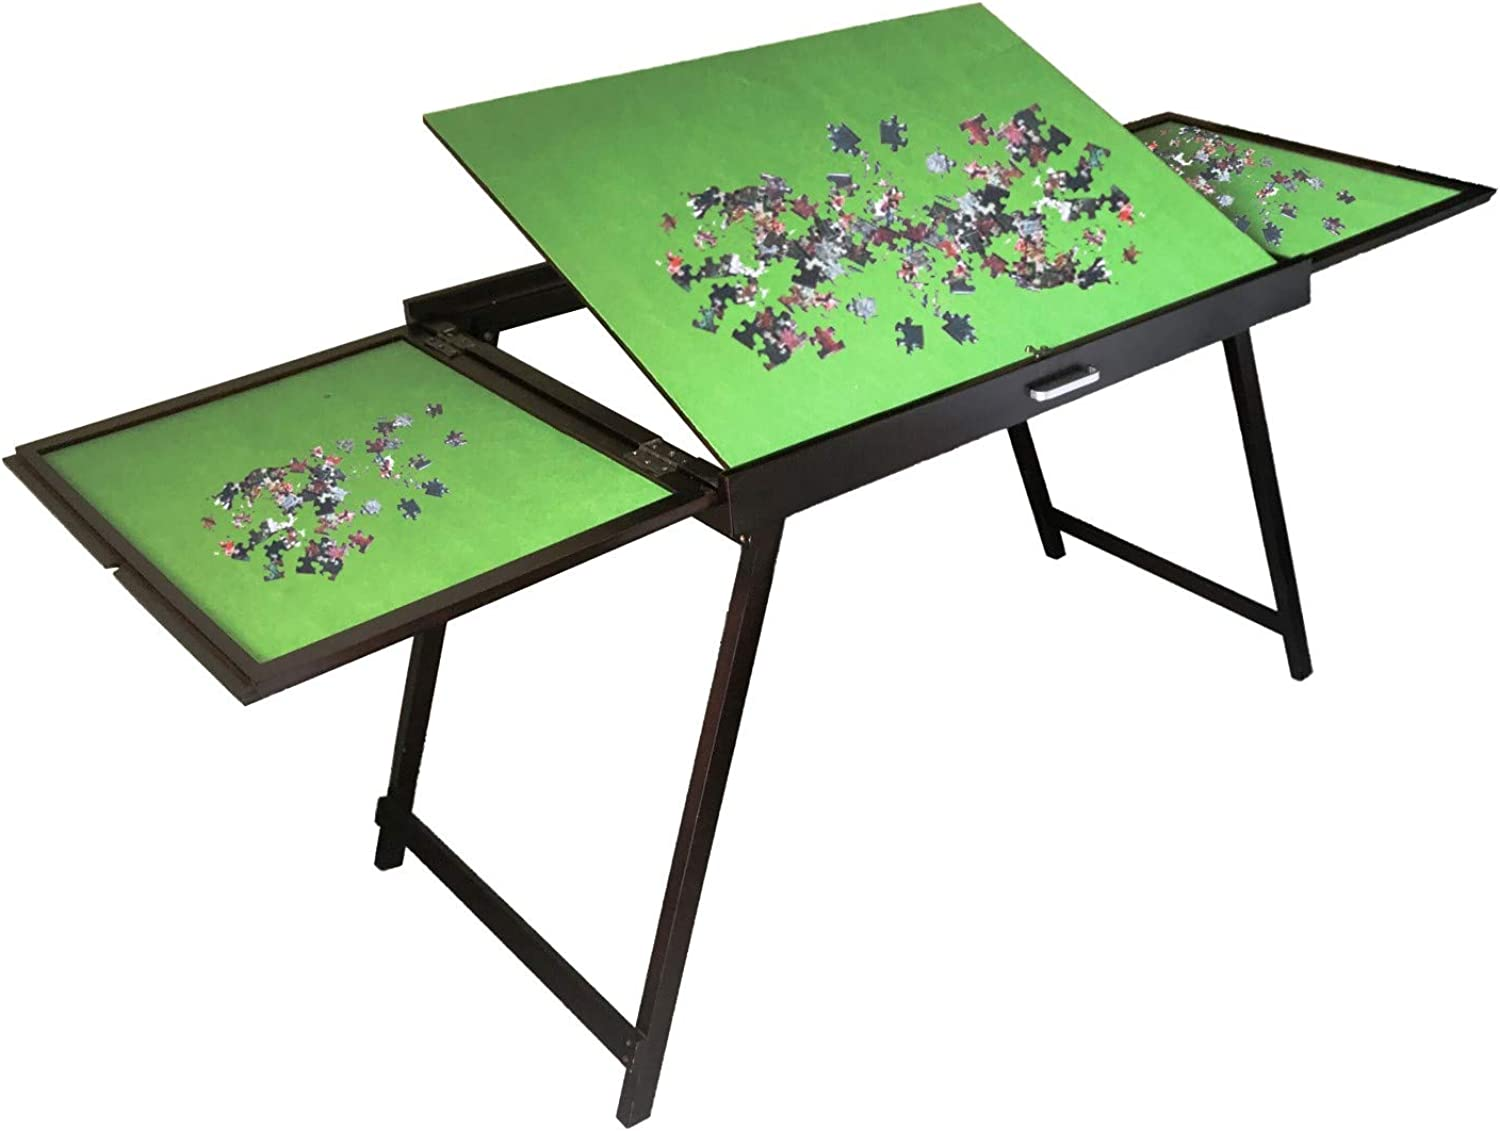 Wooden Fold-and-Go Jigsaw Table,Collapsible Jigsaw Puzzle Table and Storage System Fits 1500 pc Puzzles